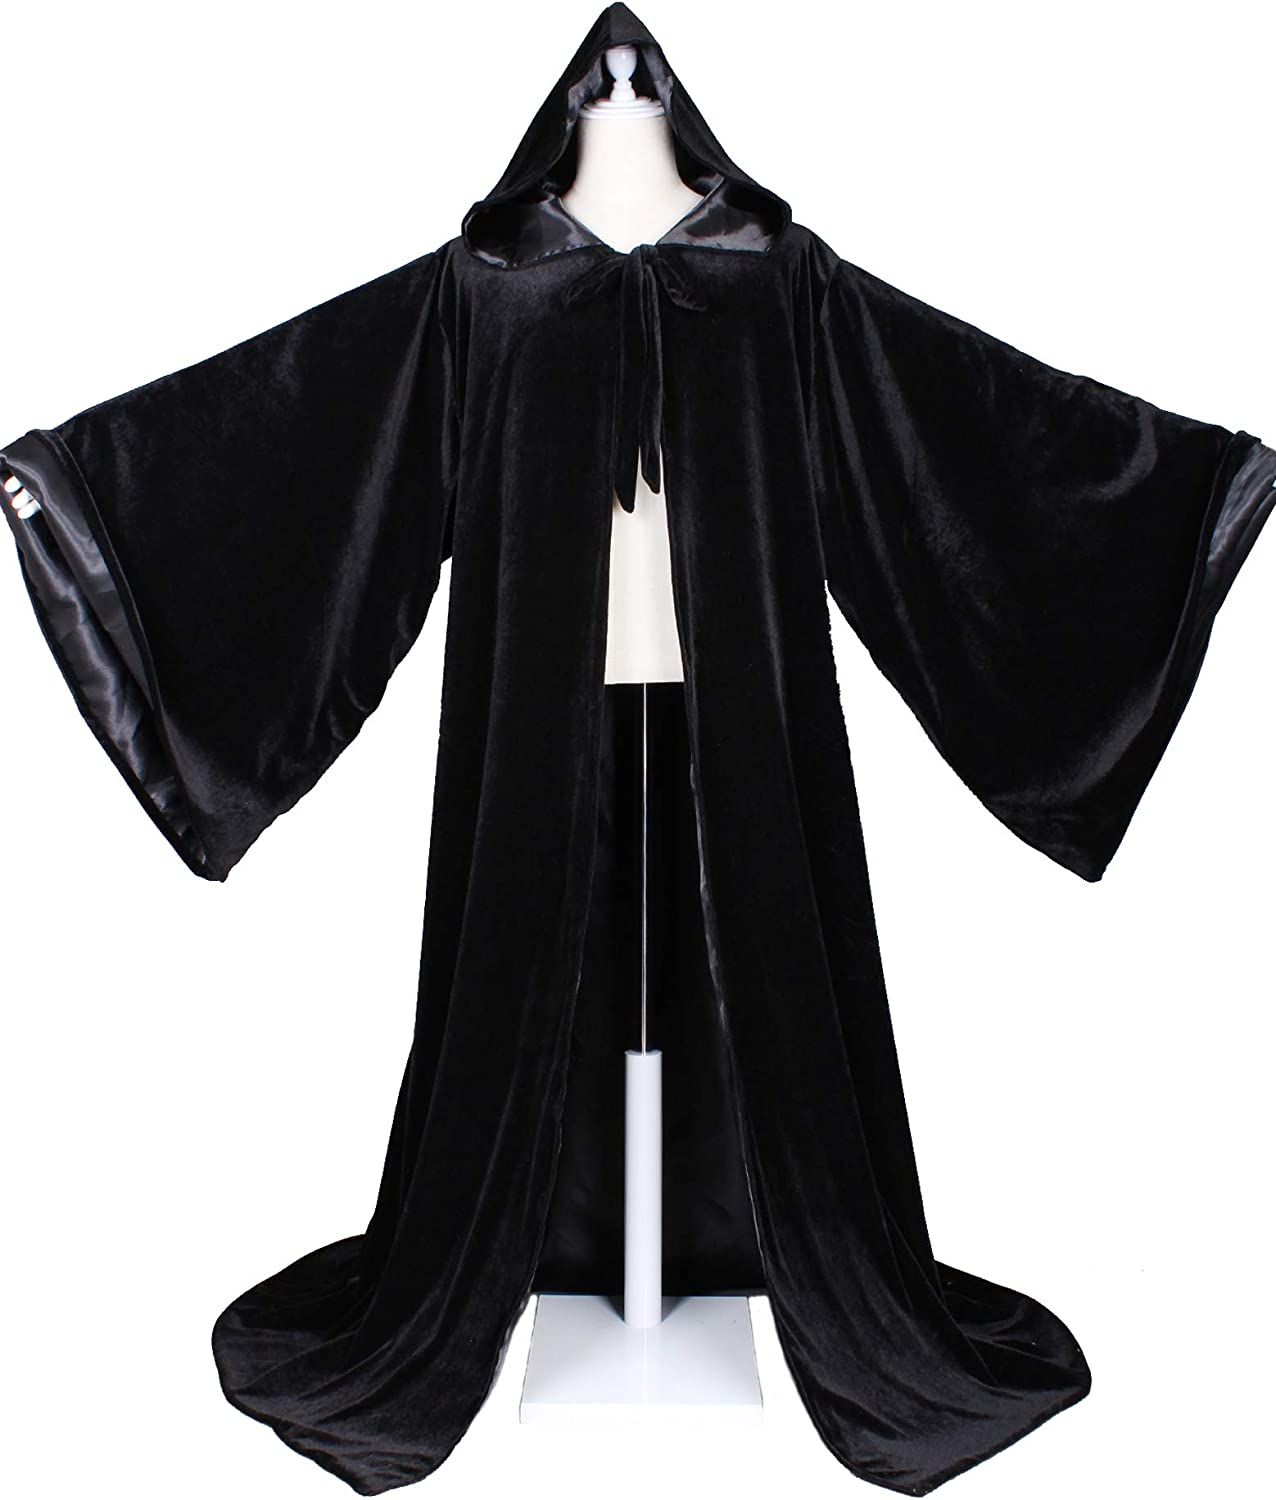 Amazon Com Luckymjmy Velvet Wizard Robe With Satin Lined Hood And Sleeves Black Clothing